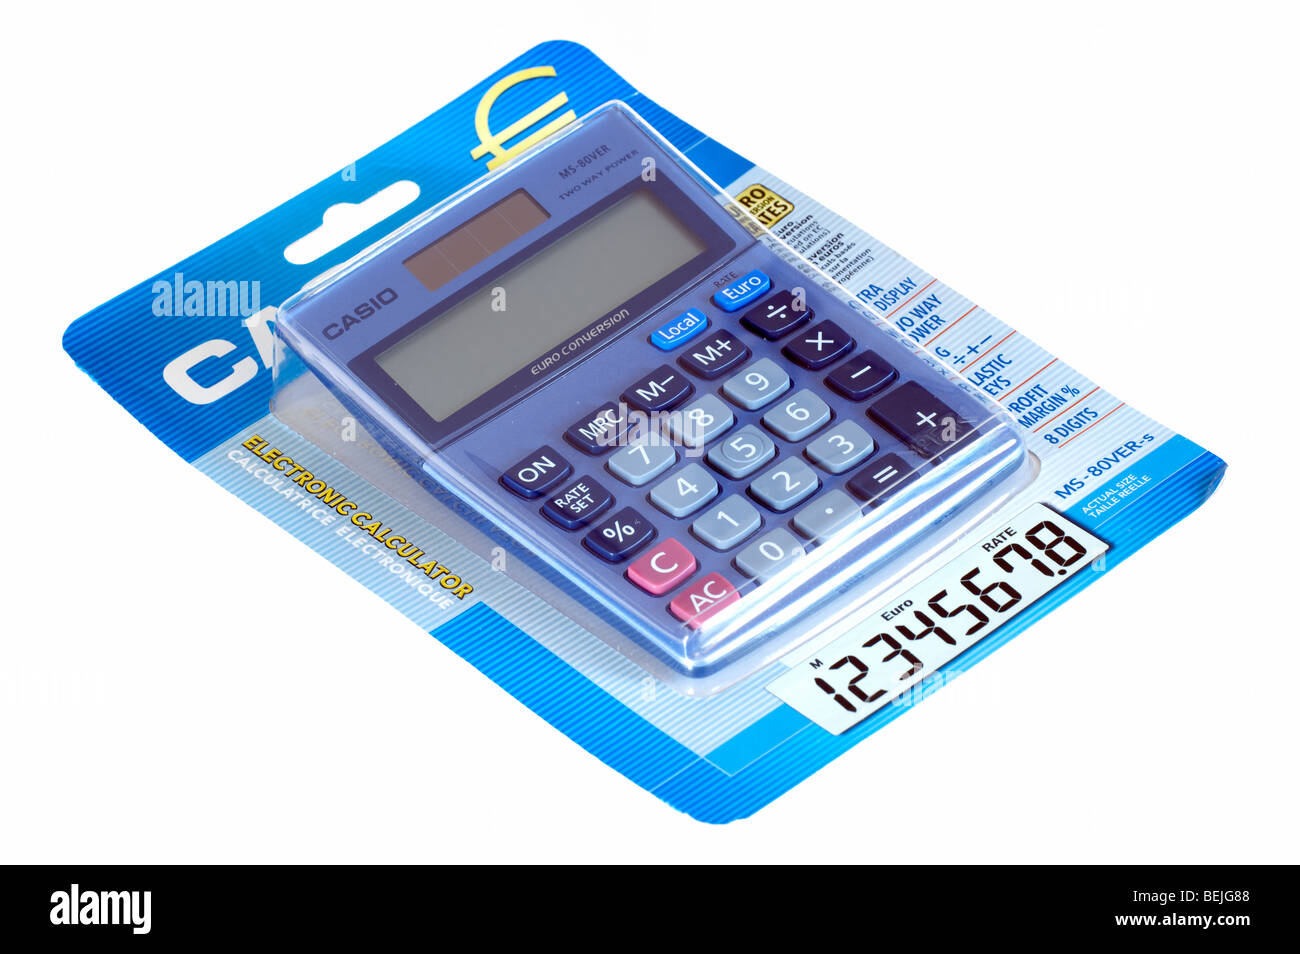 Casio packaged calculator - Stock Image